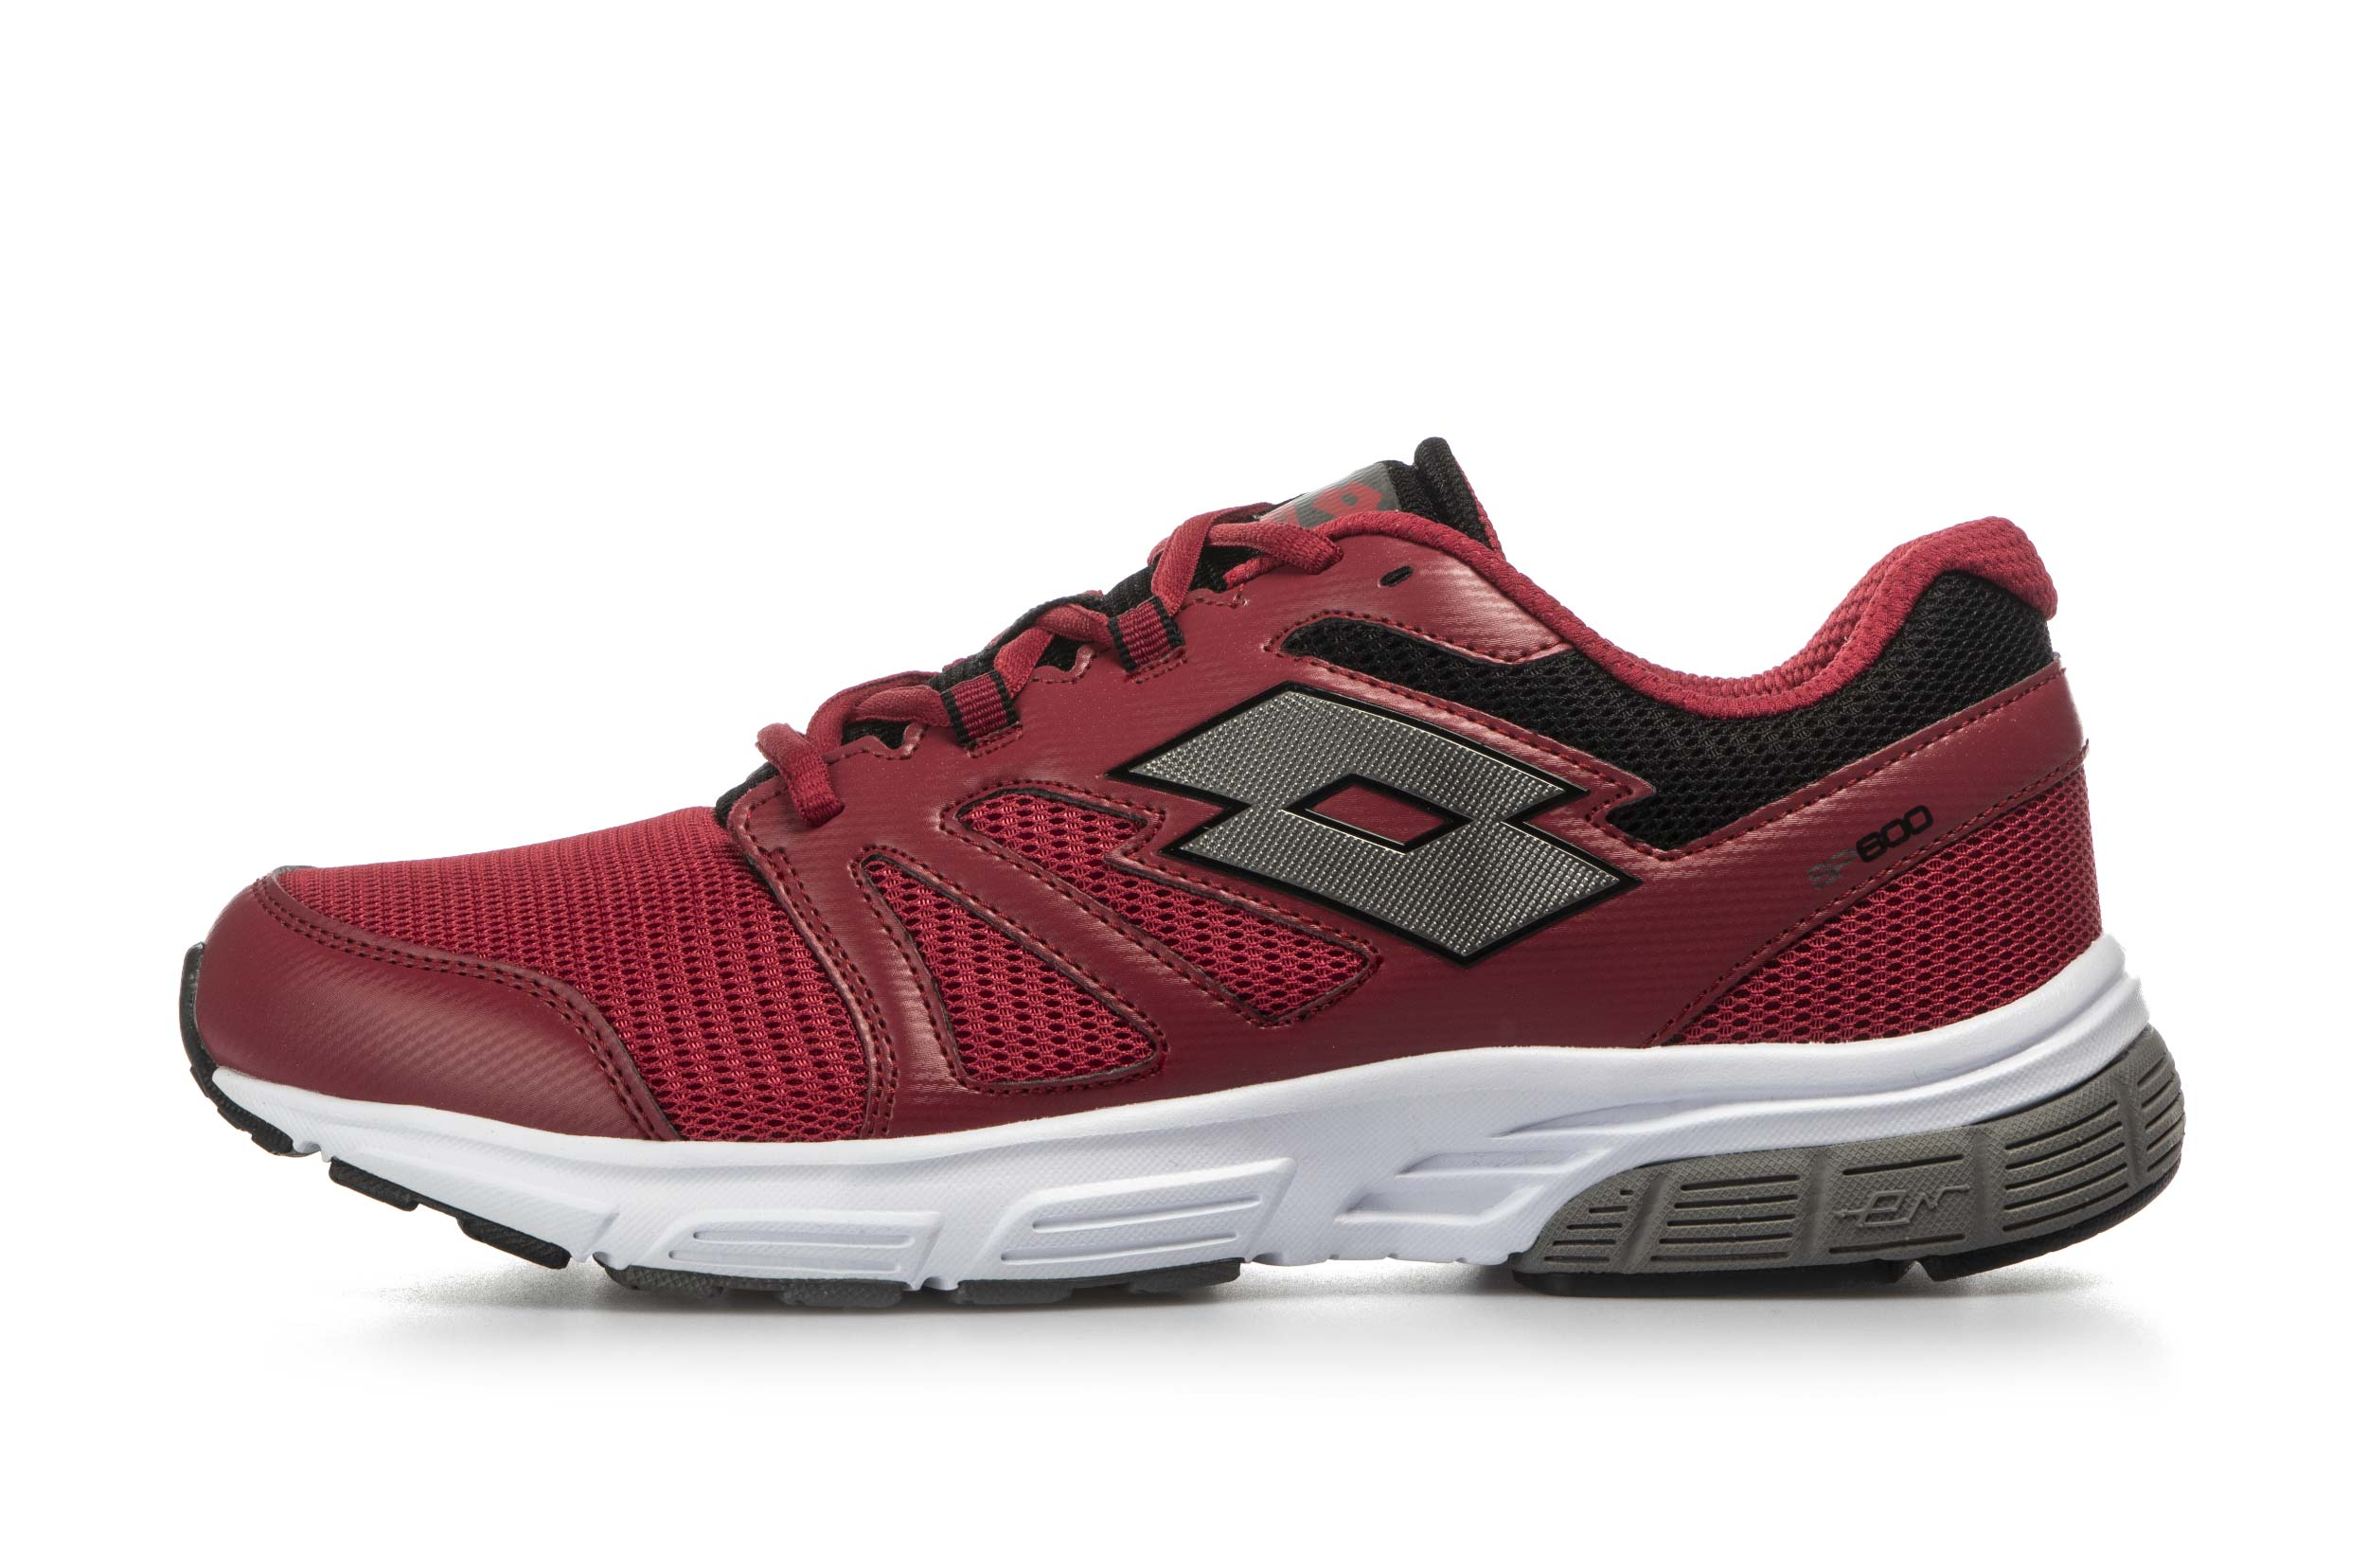 LOTTO SPEEDRIDE 600 V 210644-POPE RED/GRAVITY Κόκκινο